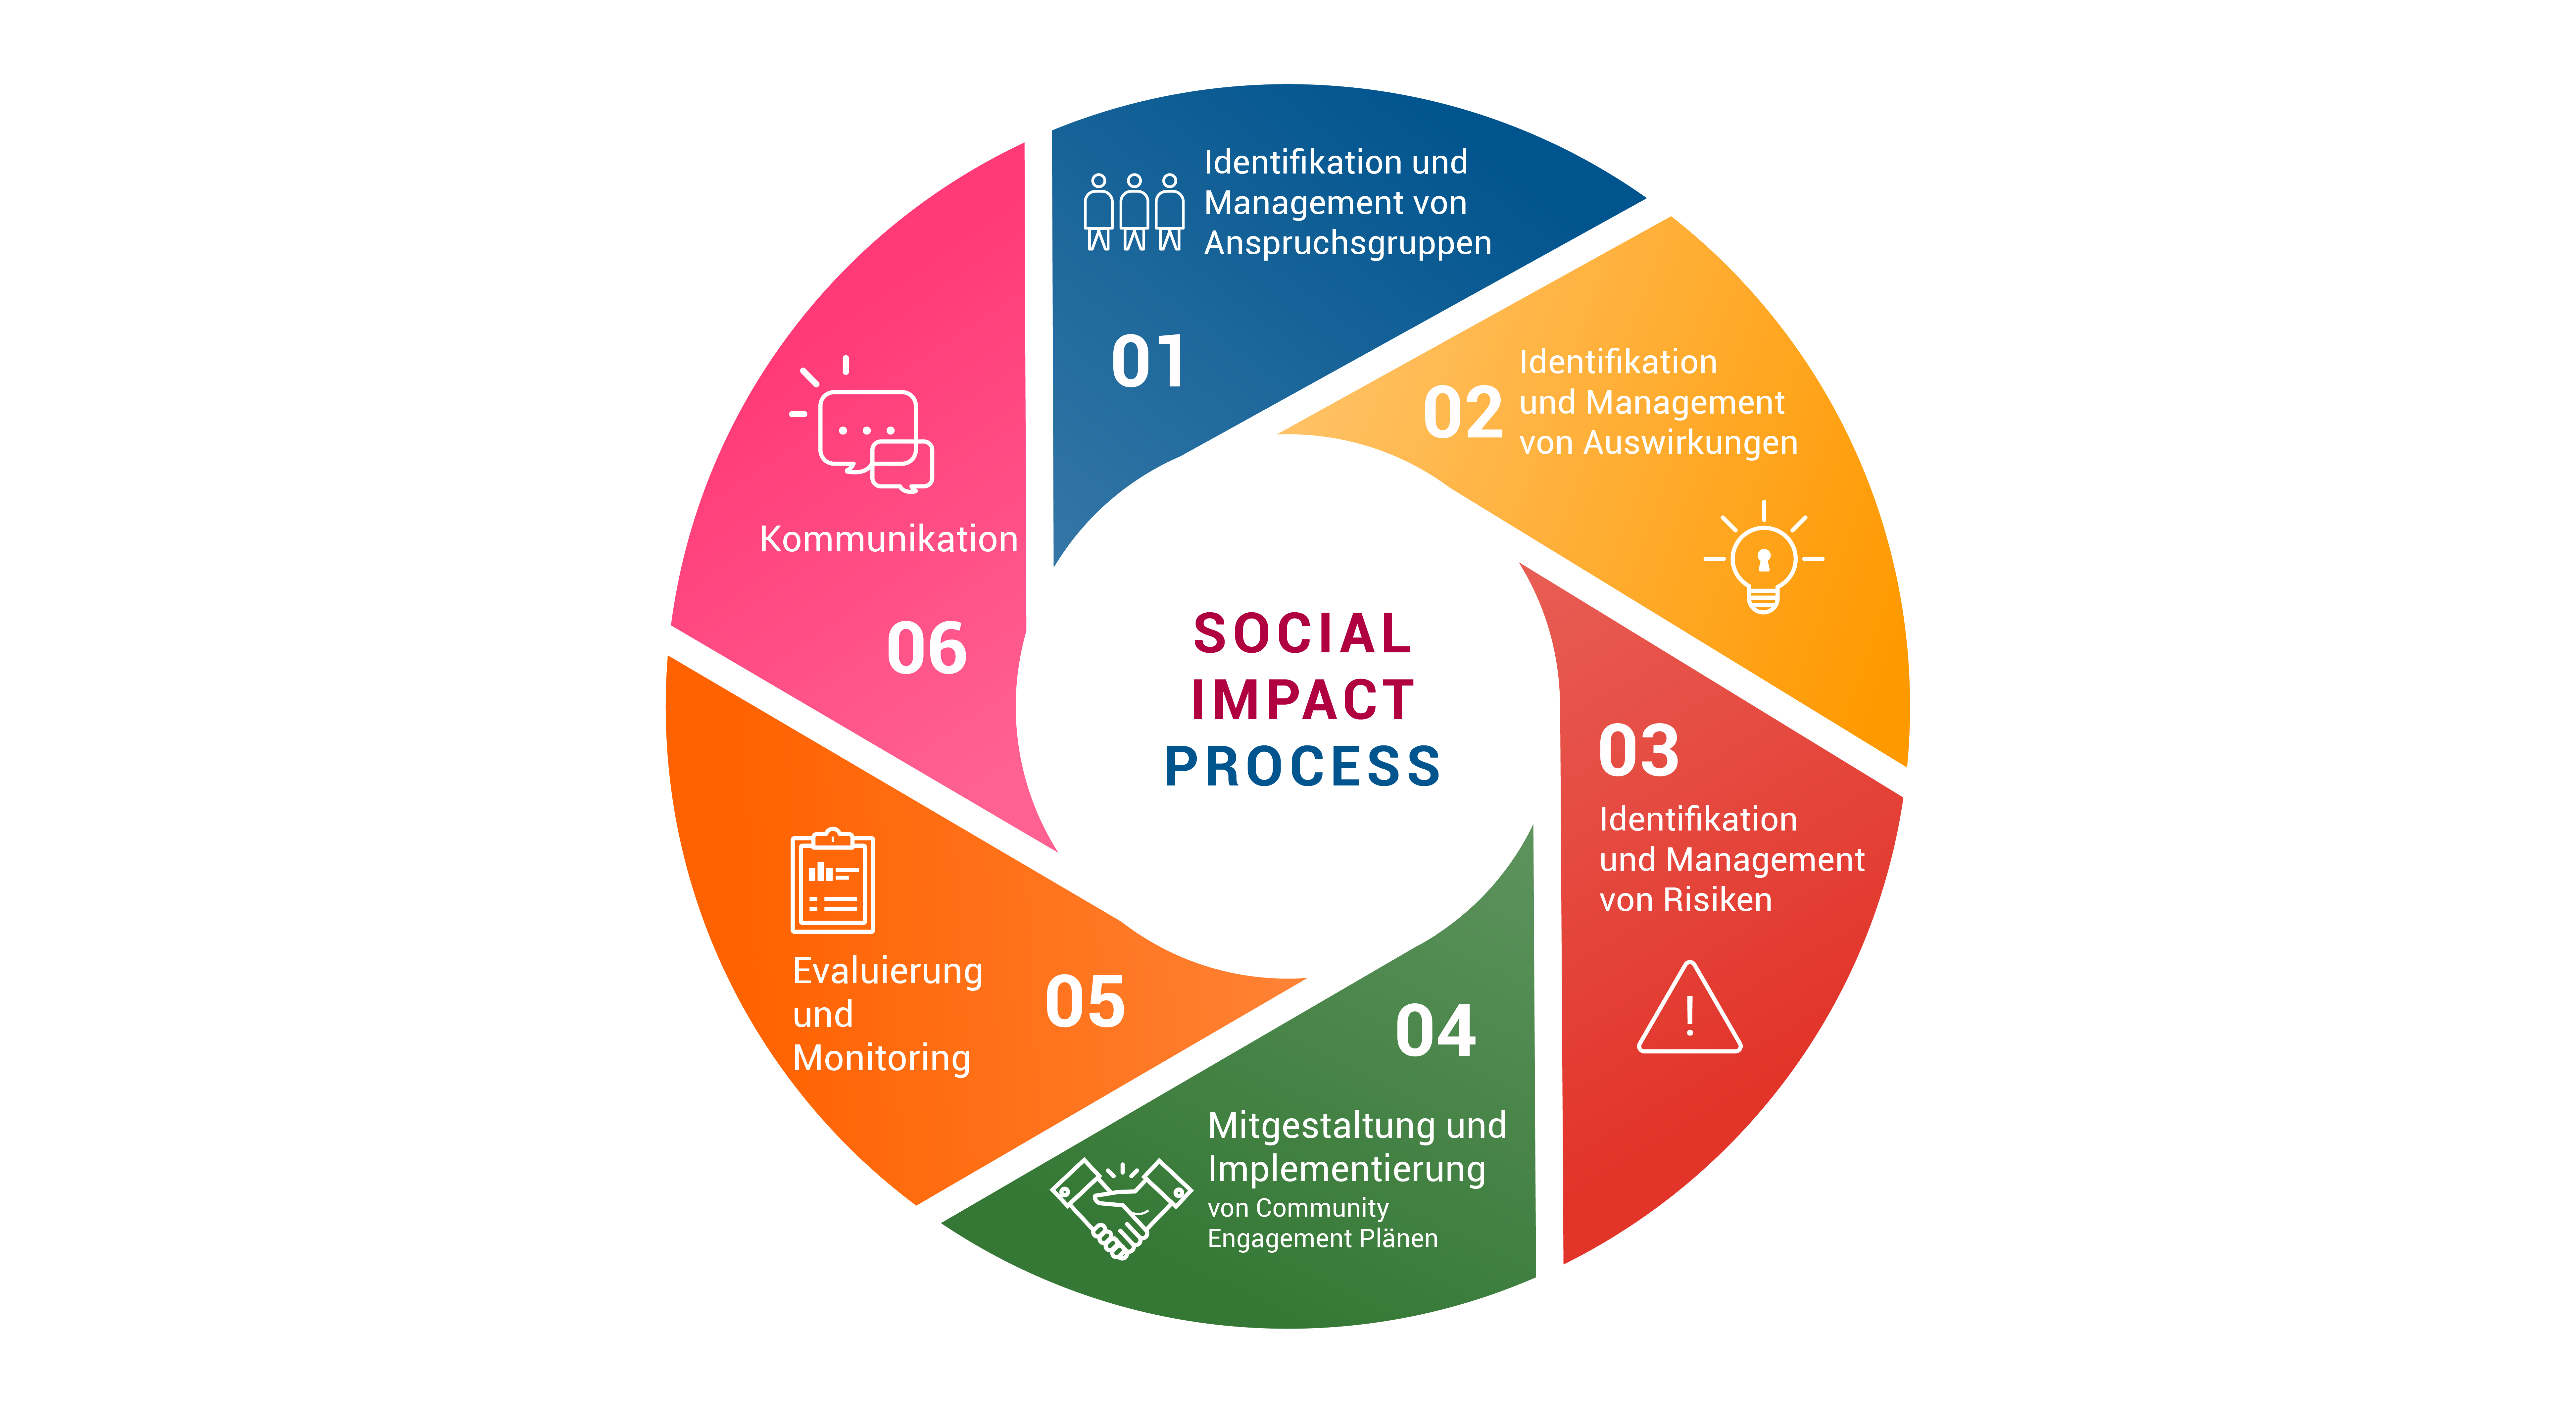 cemex social impact strategy